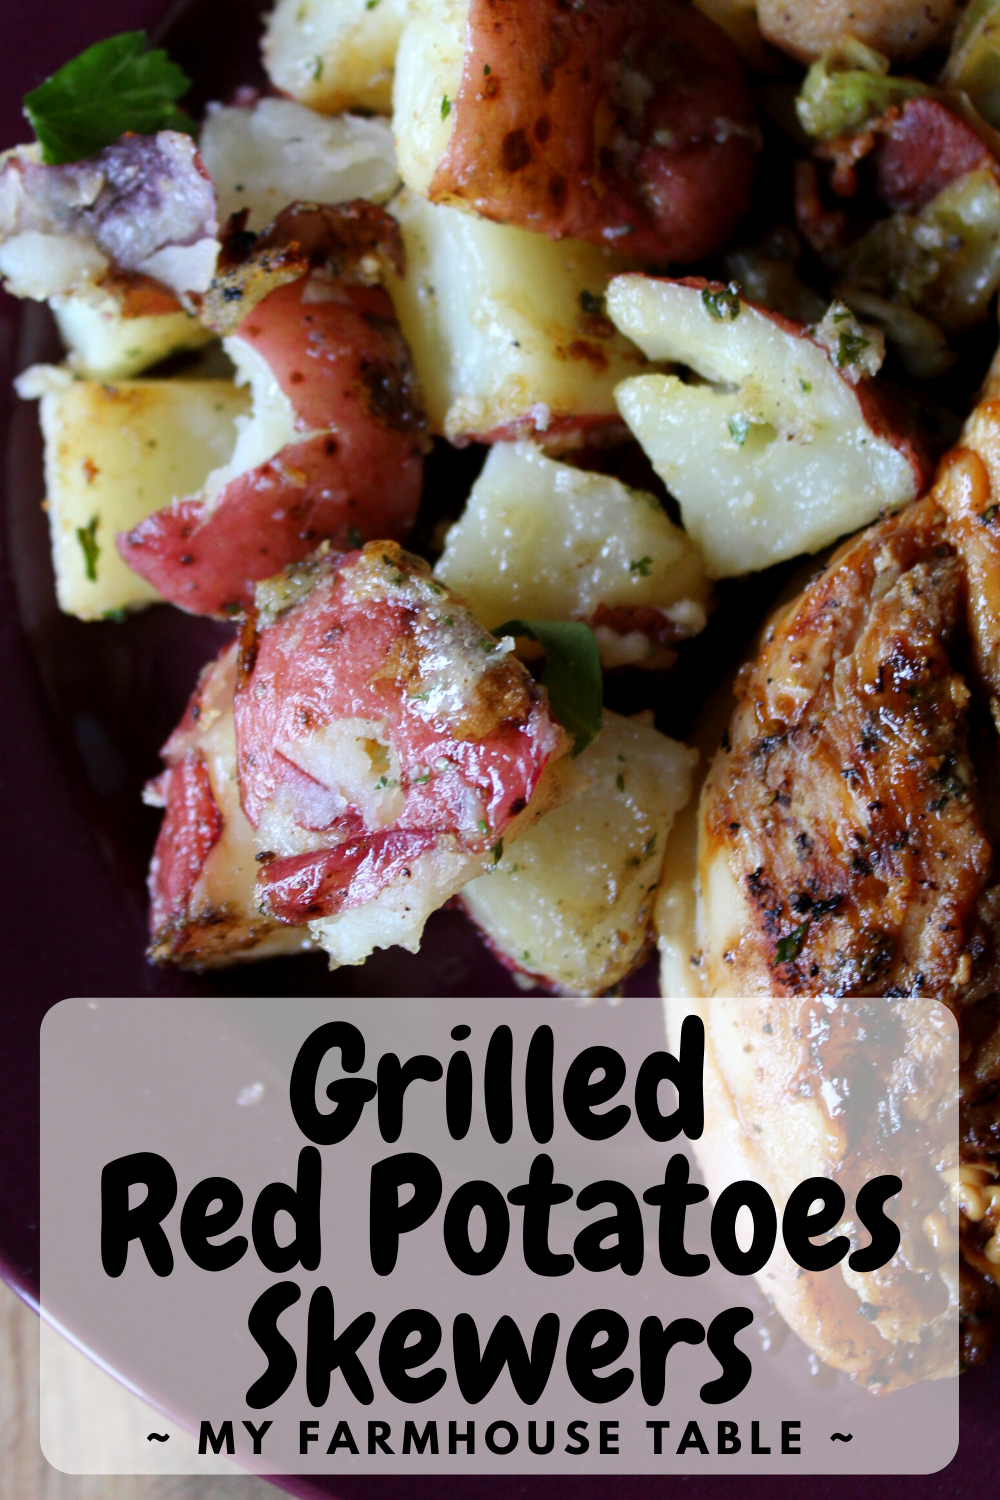 Grilled Red Potatoes Skewers Recipes Best Roasted Potatoes Grilled Potato Packets Flavored Summer Potatoes Labor Day Recipe Ideas Ranch Flavored Baby Potatoes My Farmhouse Table